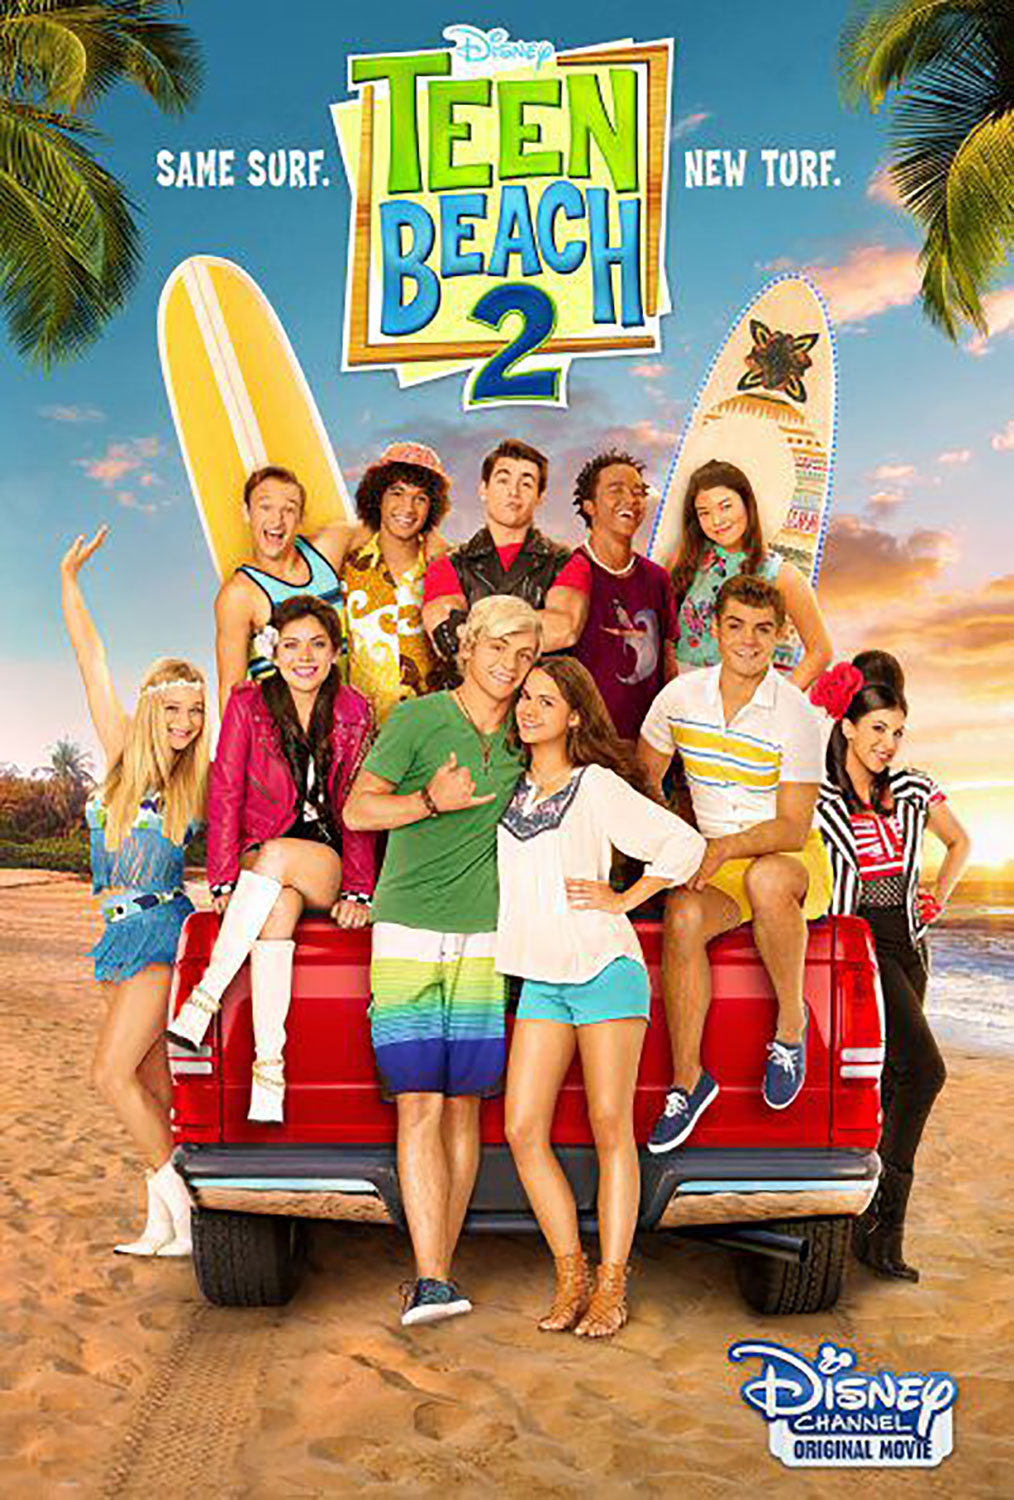 affiche poster teen beach movie 2 disney channel